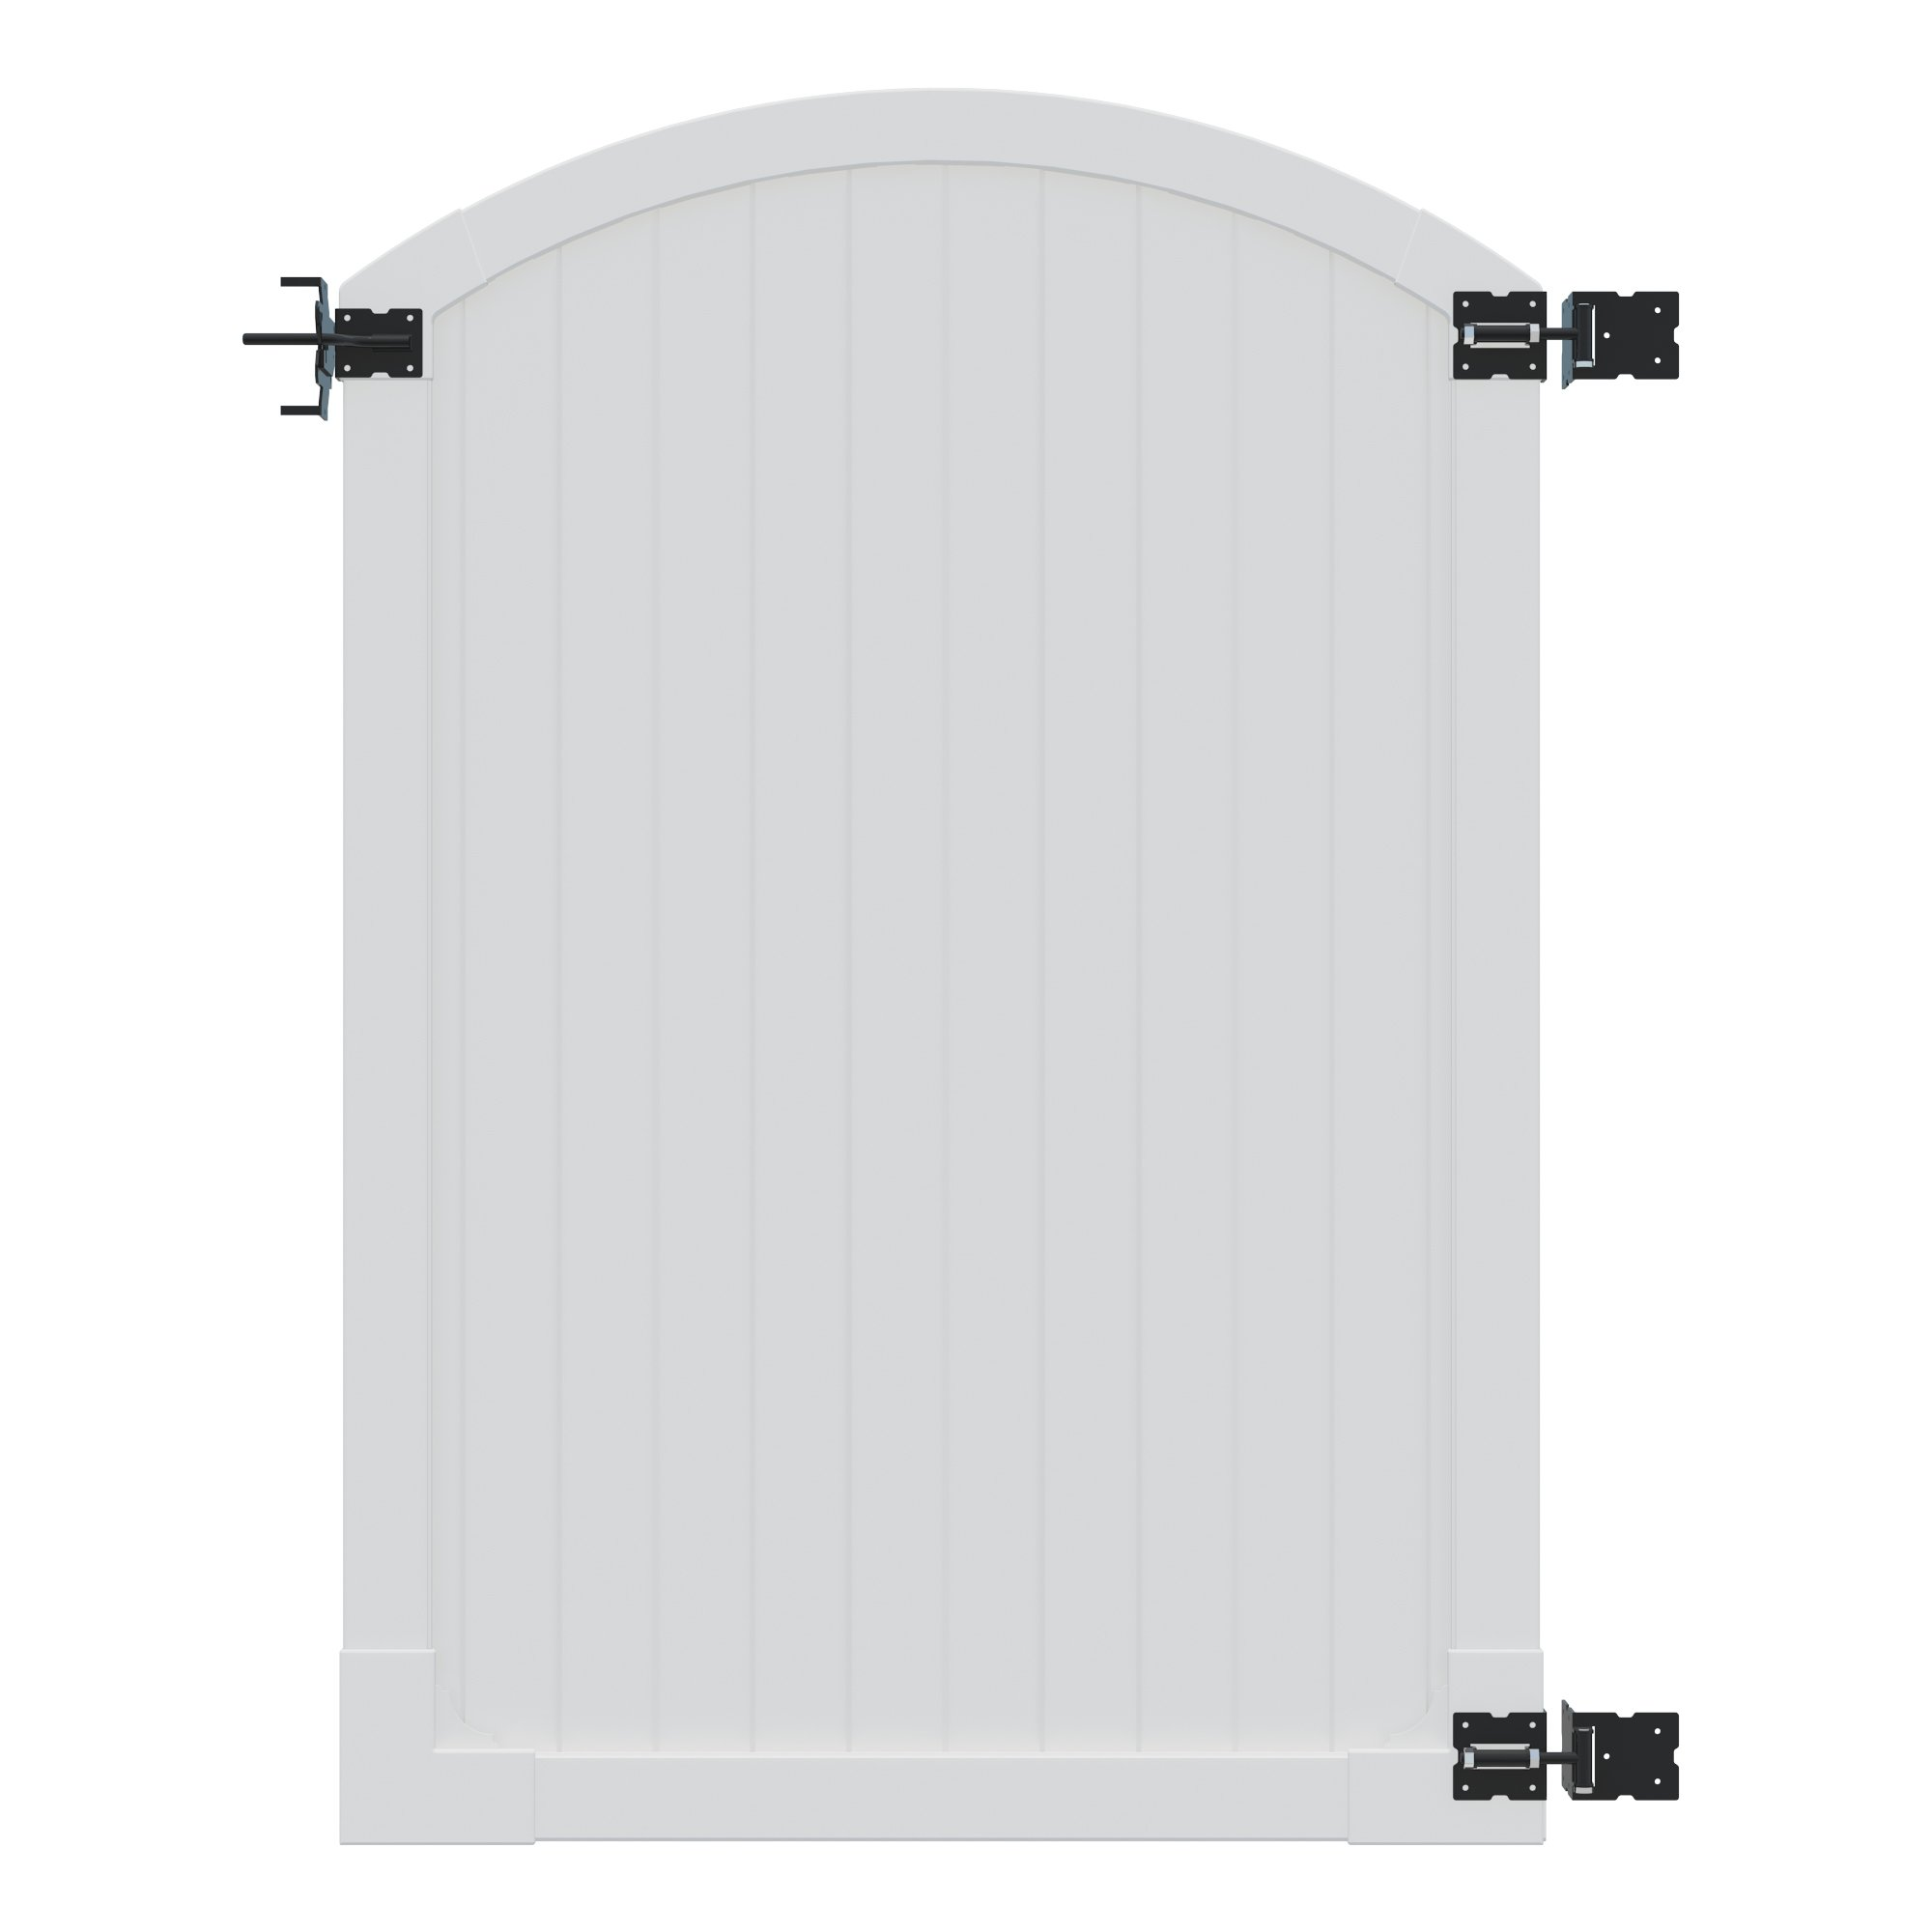 WamBam Traditional 6 by 4-Feet Premium Vinyl Arched Vinyl Gate with Powder Coated Stainless Steel Hardware